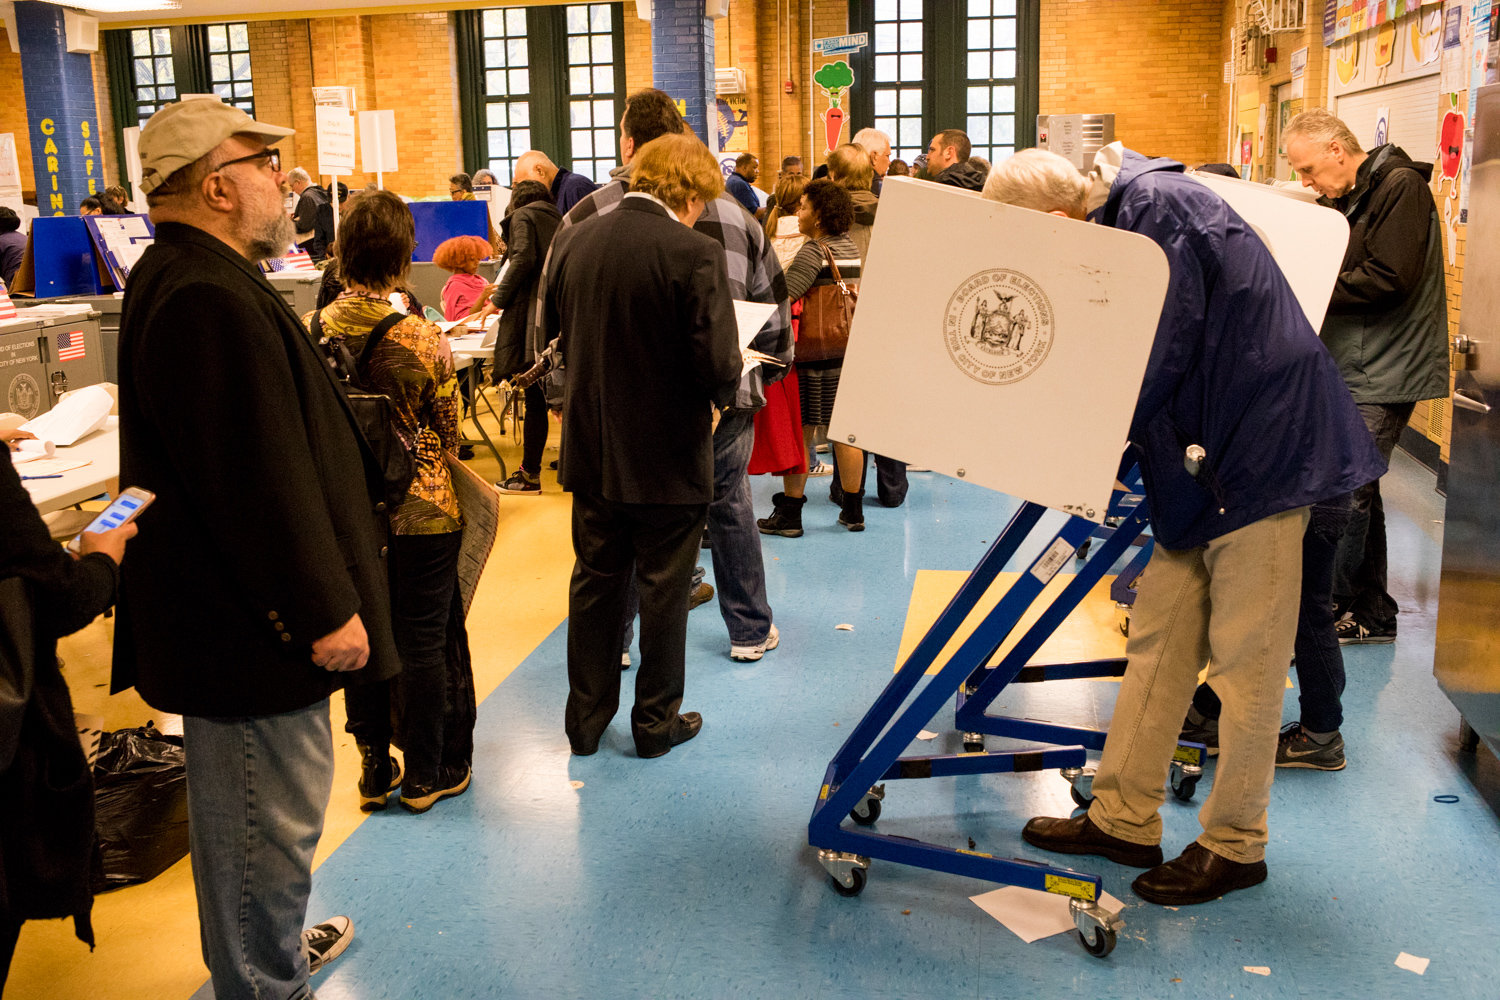 Unaffiliated voters looking to cast a ballot in the April 28 presidential primary election need to register with a party by Feb. 14. New York is one of 12 states with closed primaries.